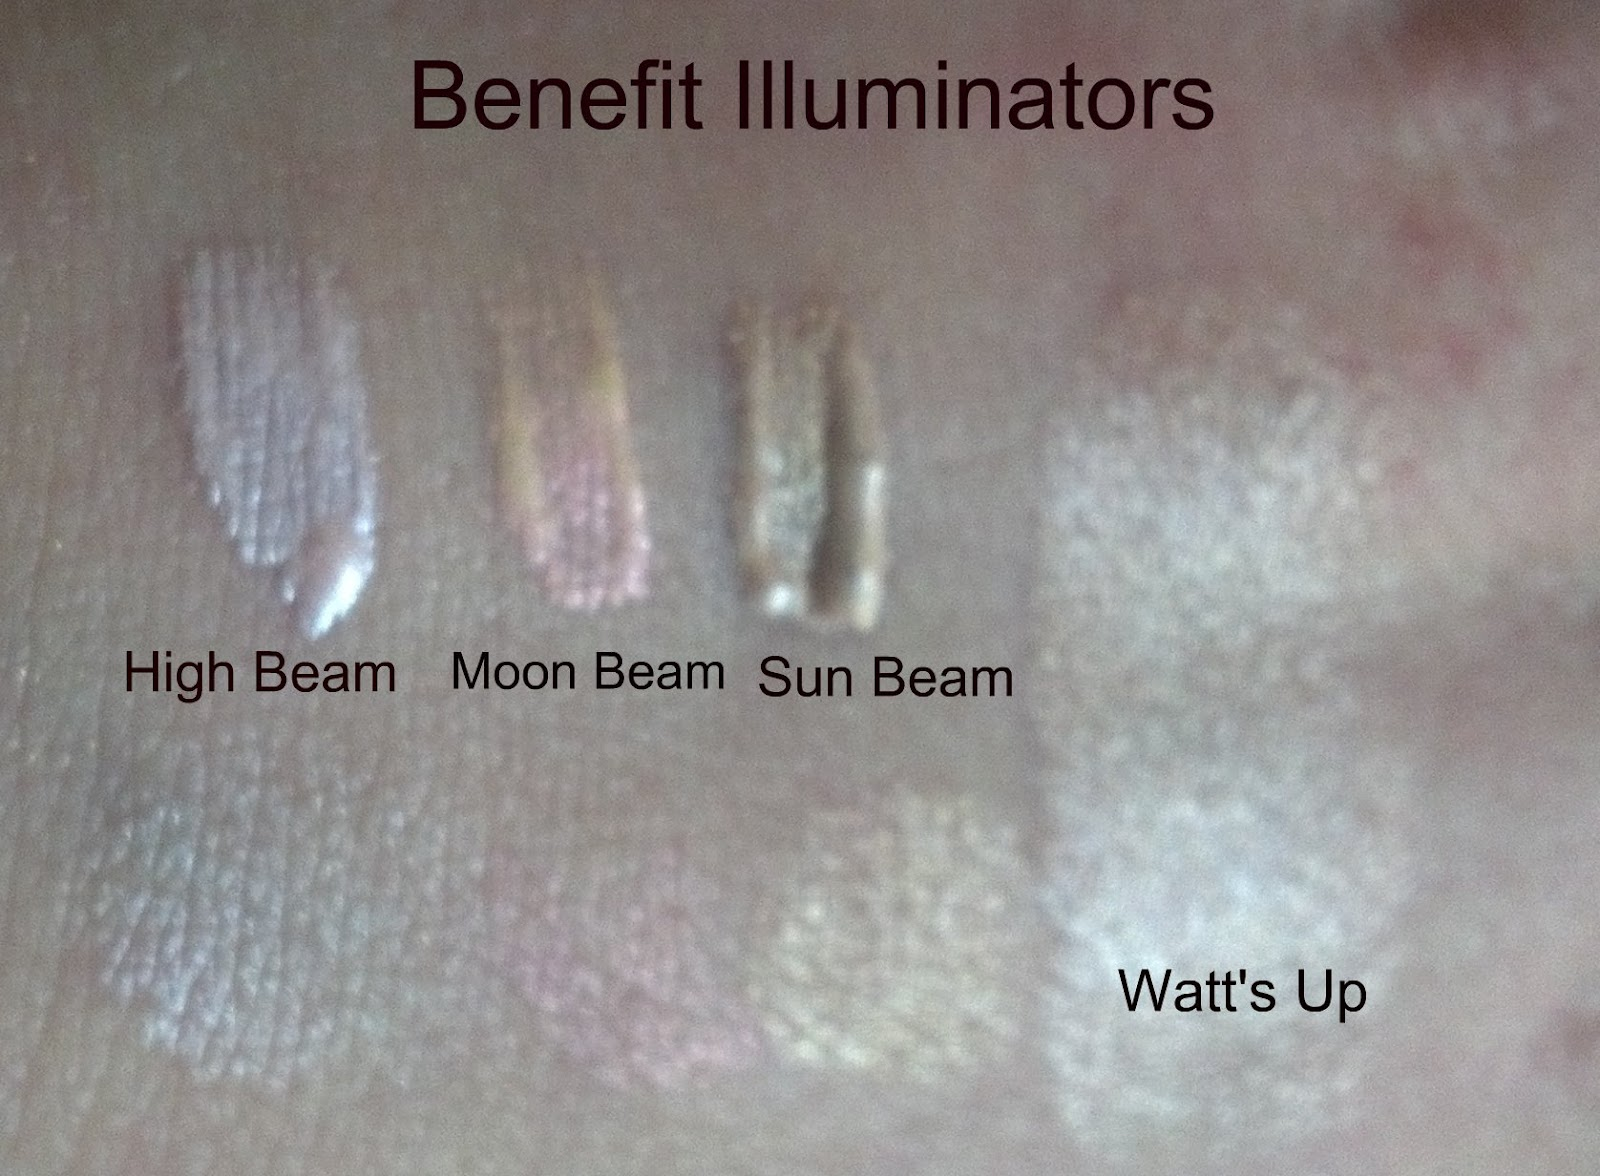 Benefit highlighters